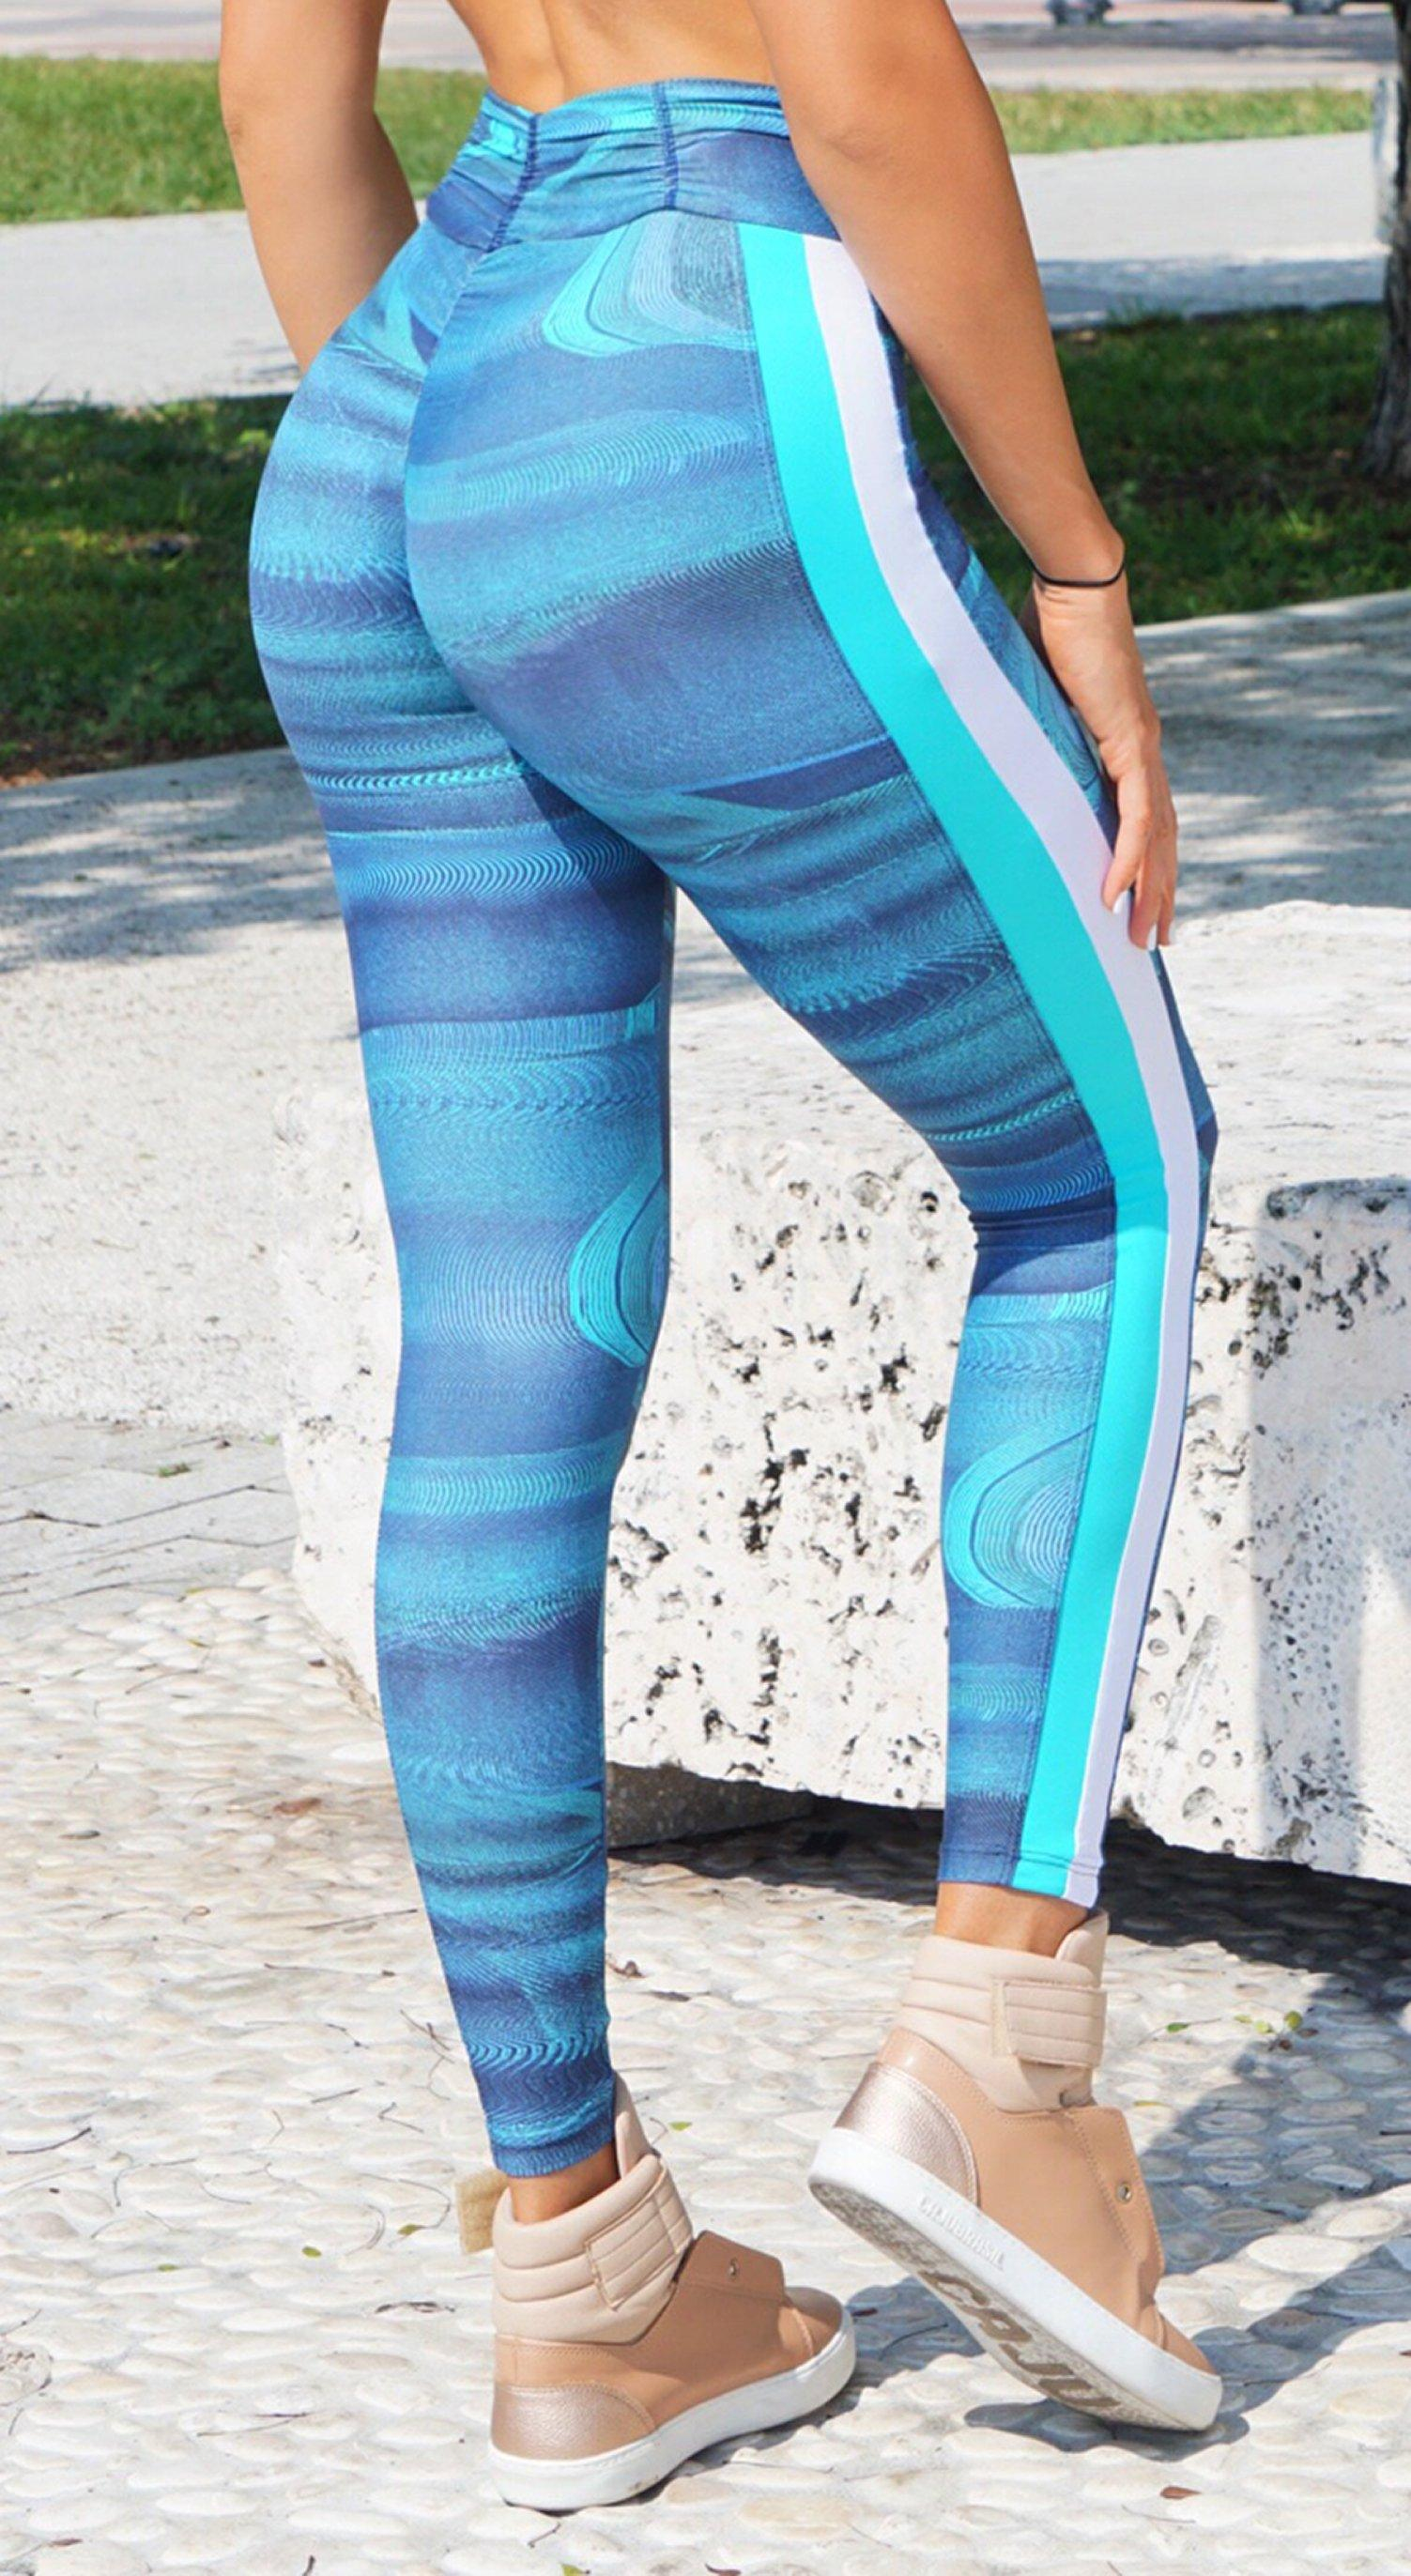 Brazilian Workout Legging - Booty Up Side Stripes Jade Blue Print